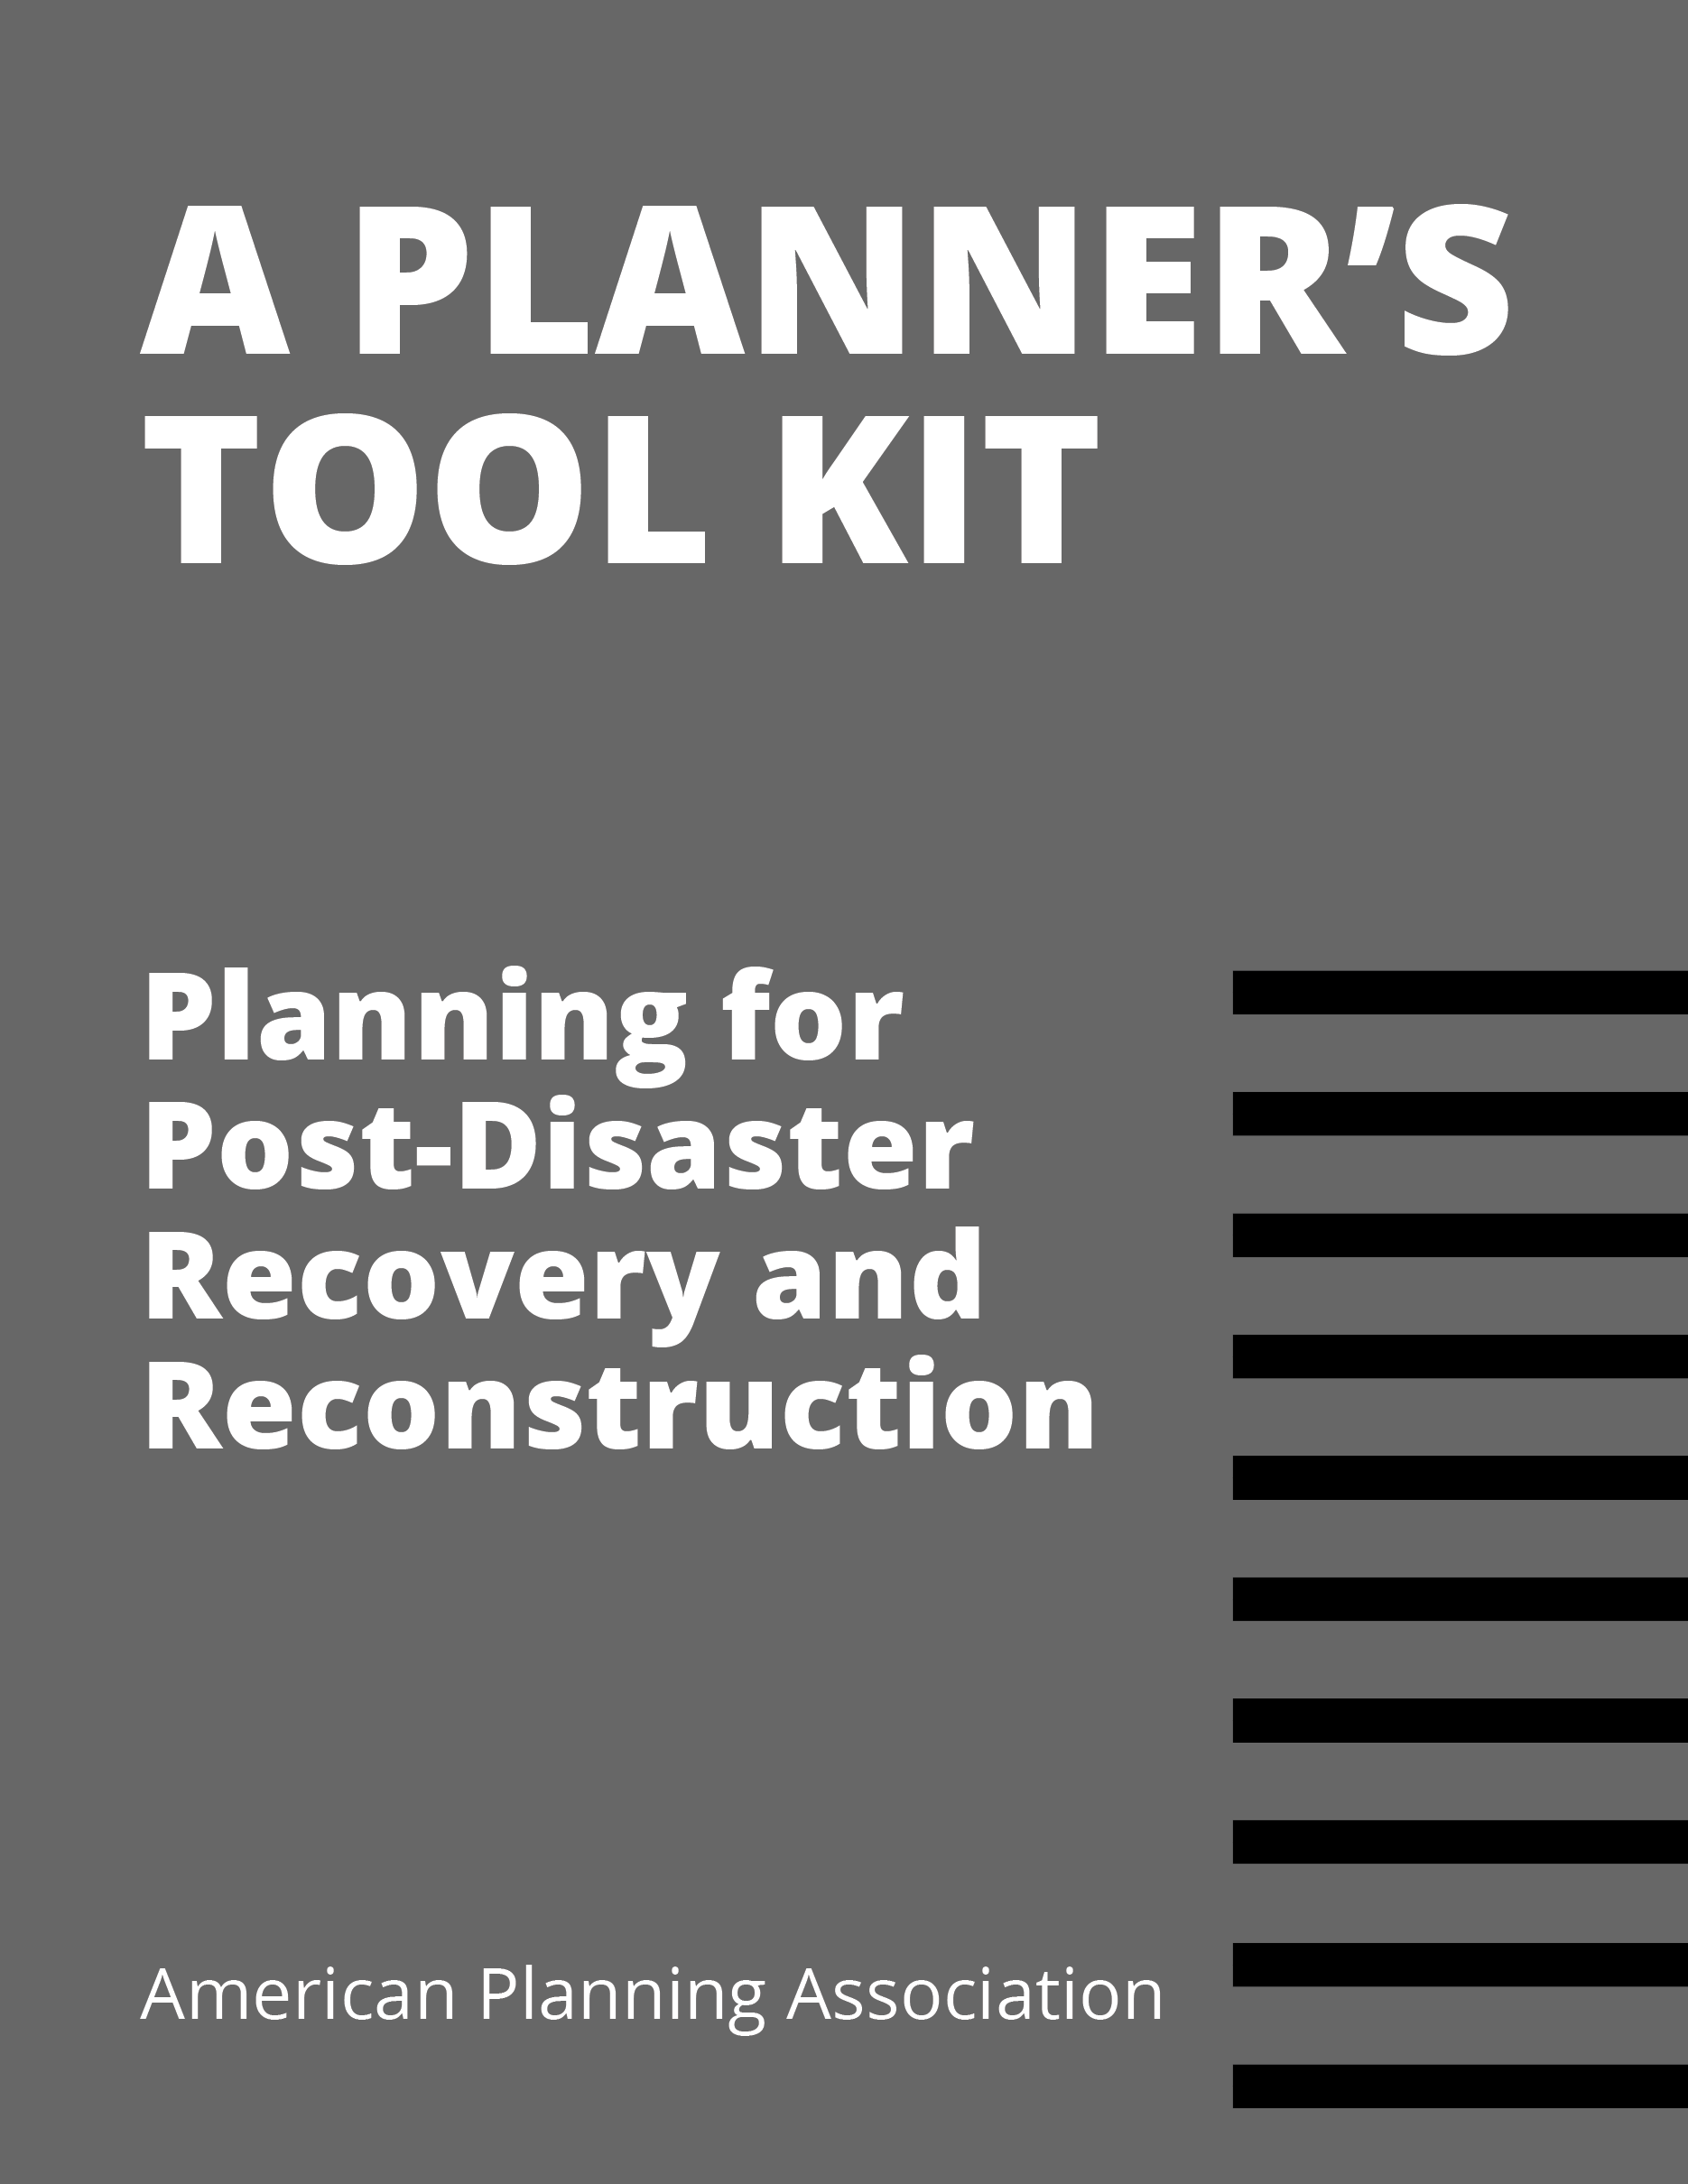 A Planner's Tool Kit from Planning for Post-Disaster Recovery and Reconstruction